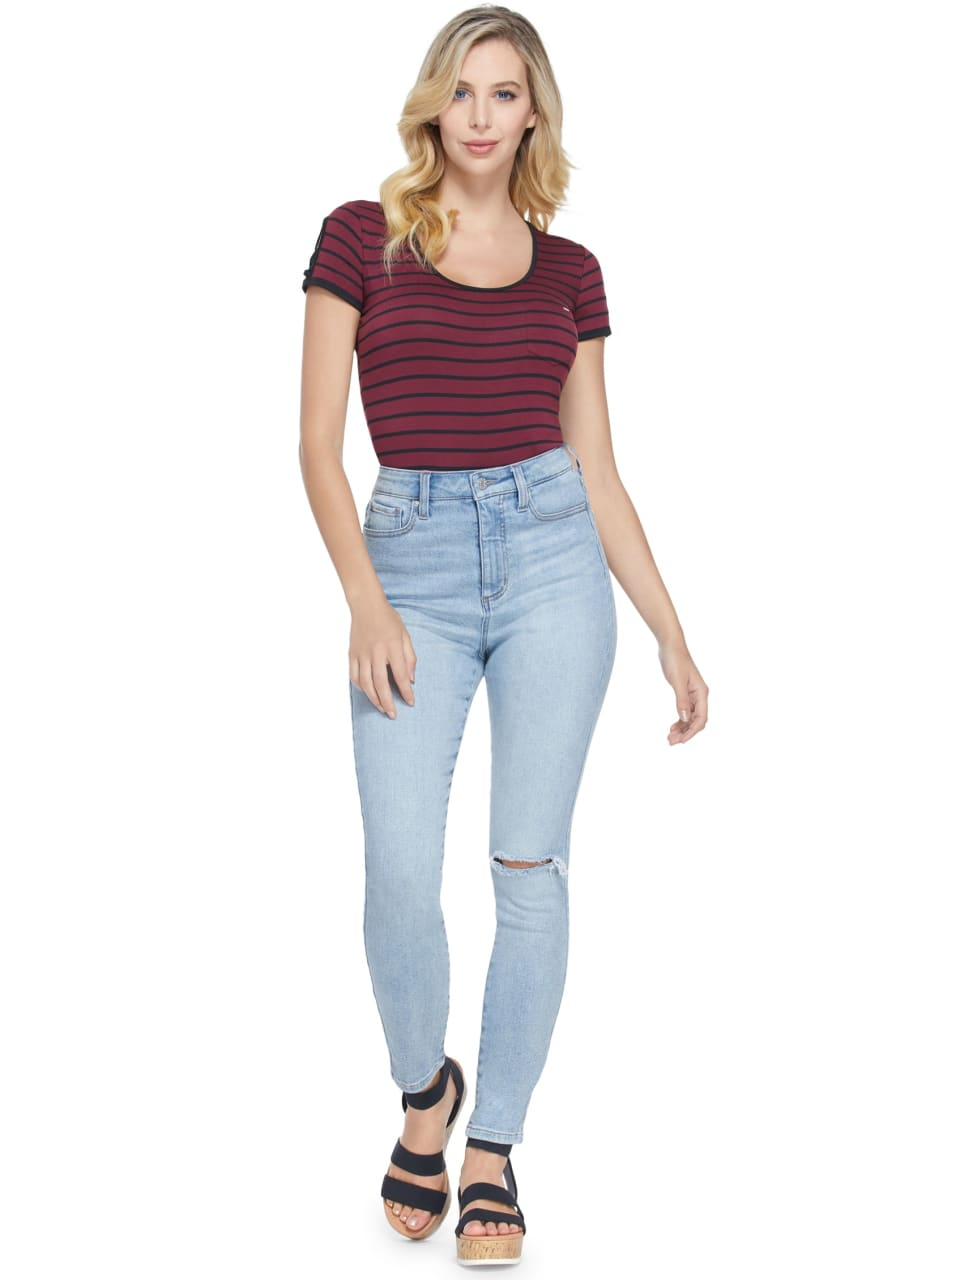 GUESS-Factory-Women-039-s-Nico-Striped-Cutout-Scoop-Neck-Short-Sleeve-Tee thumbnail 11